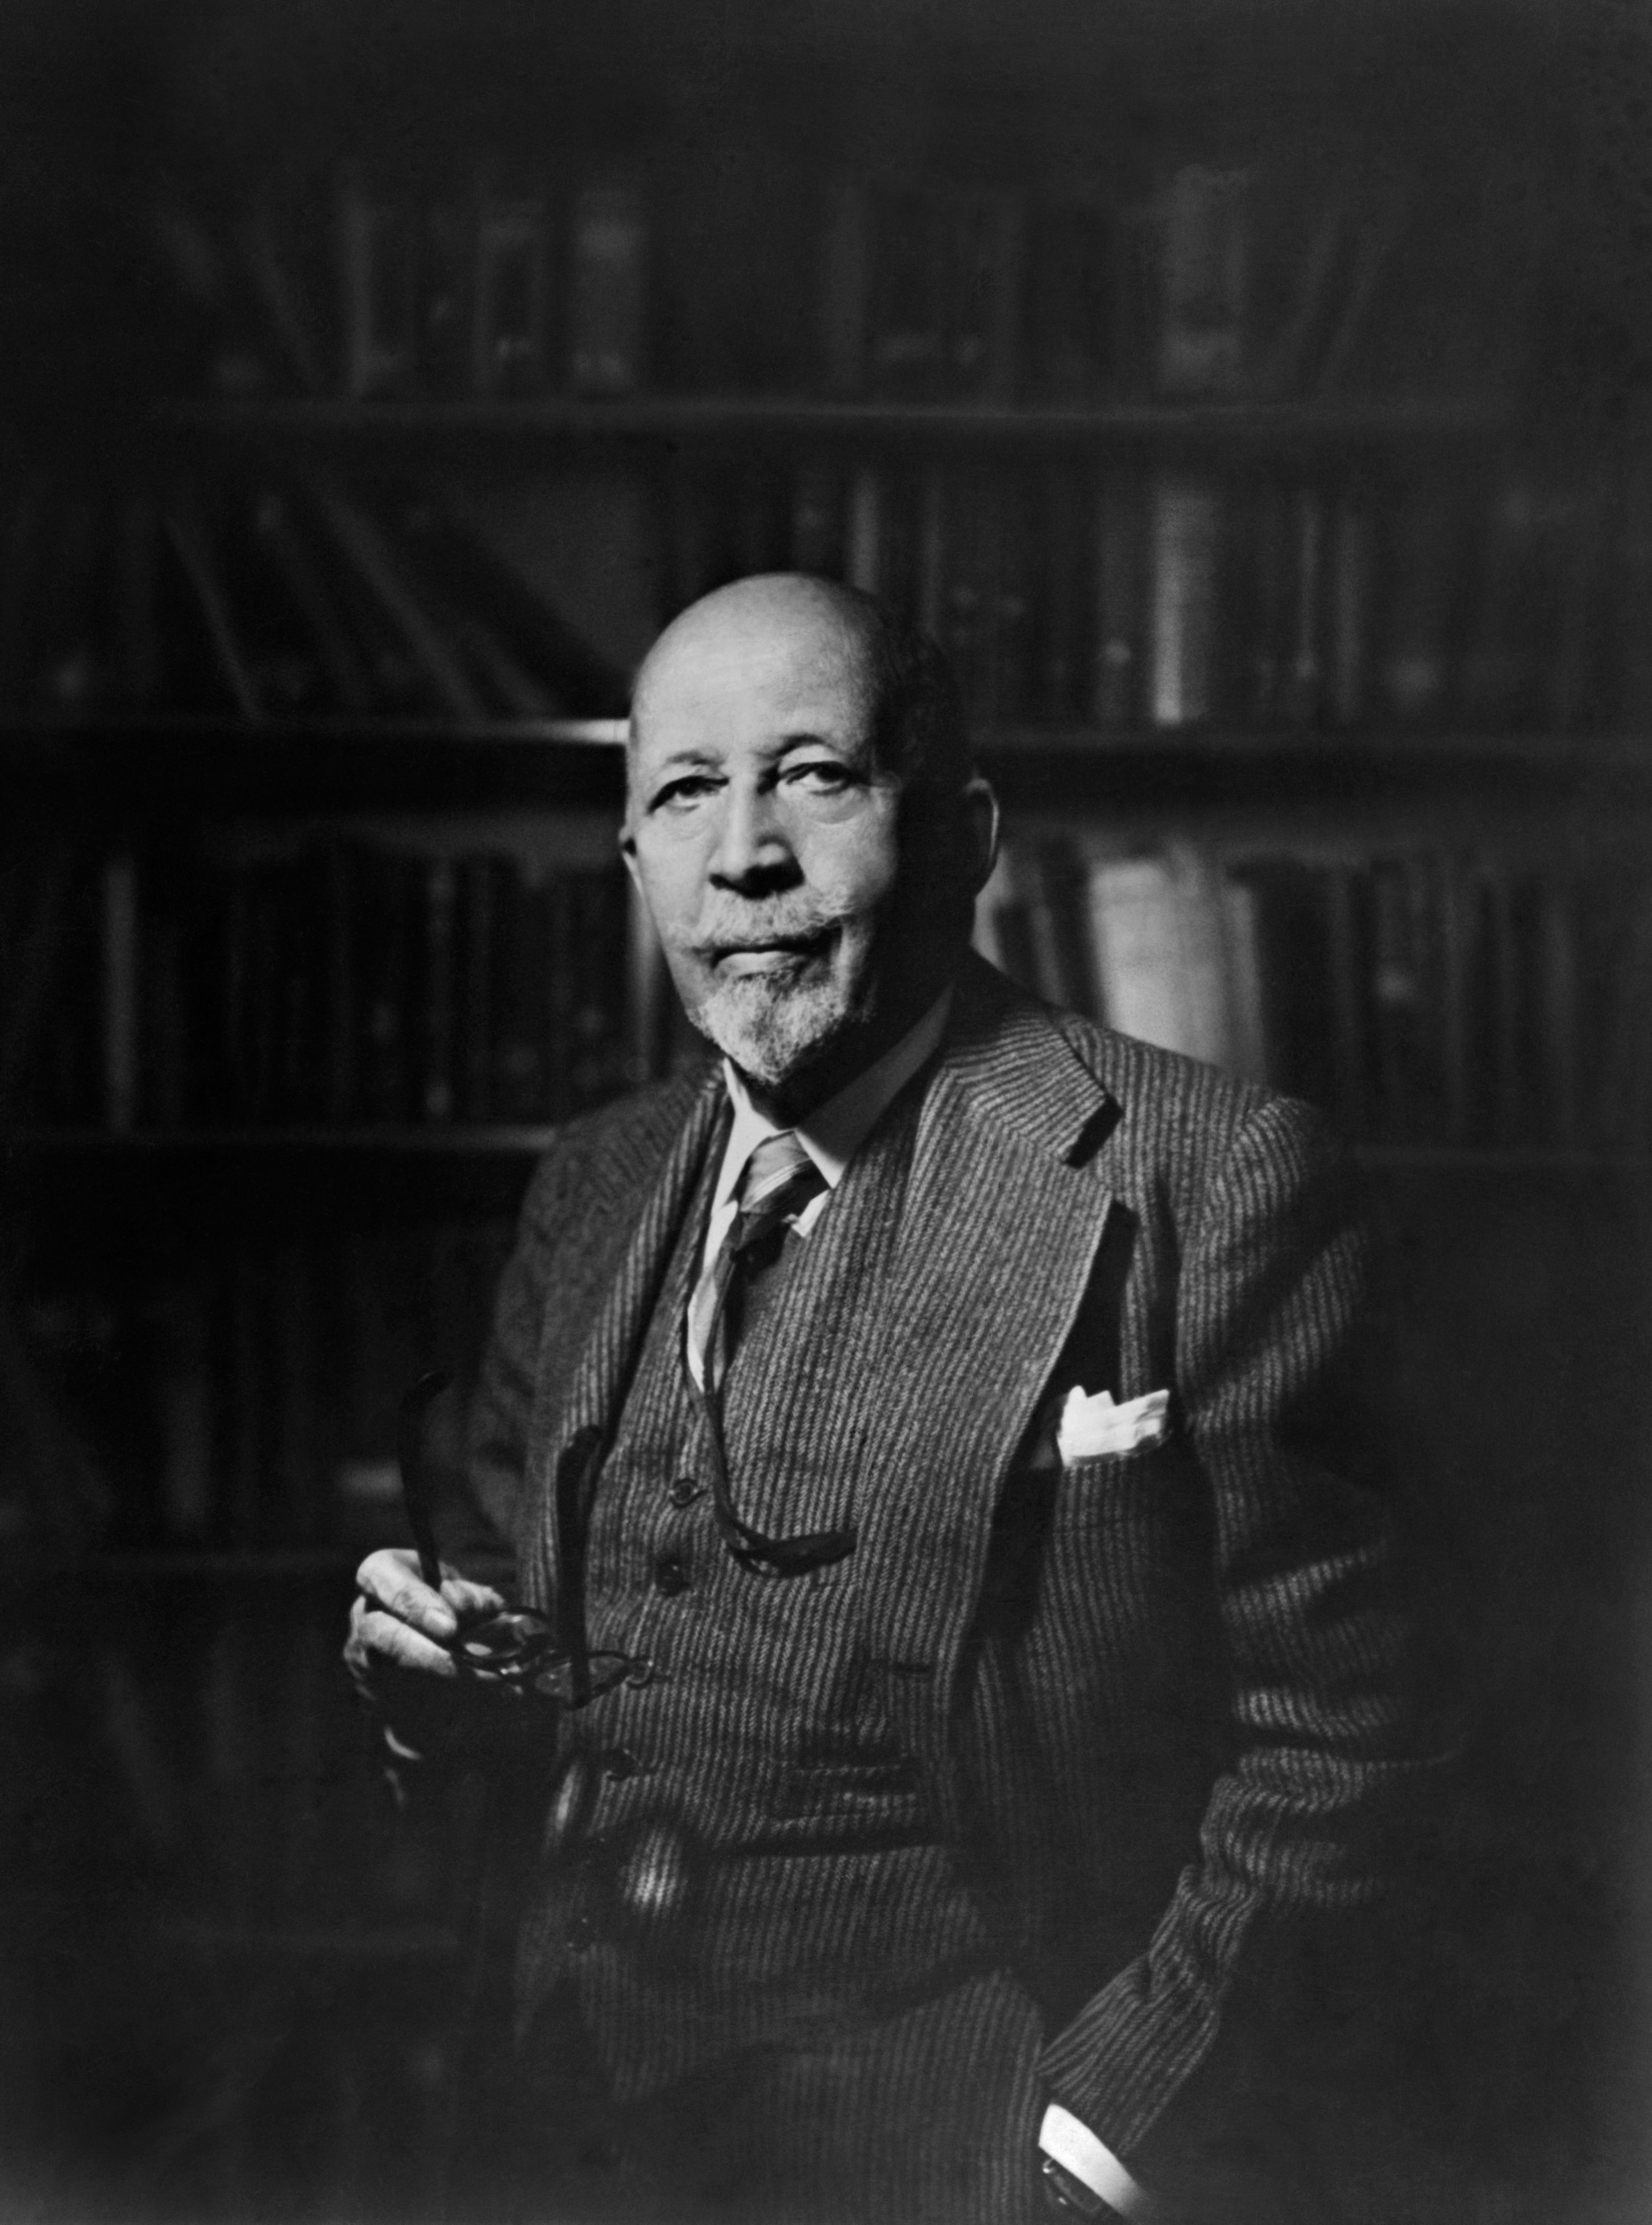 booker t washington race problems essay Essay on comparing web dubois and booker t washington  t washington  and w e b du bois' strategies for dealing with problems faced by african  americans  he also had a major influence on southern race relations and was  a.